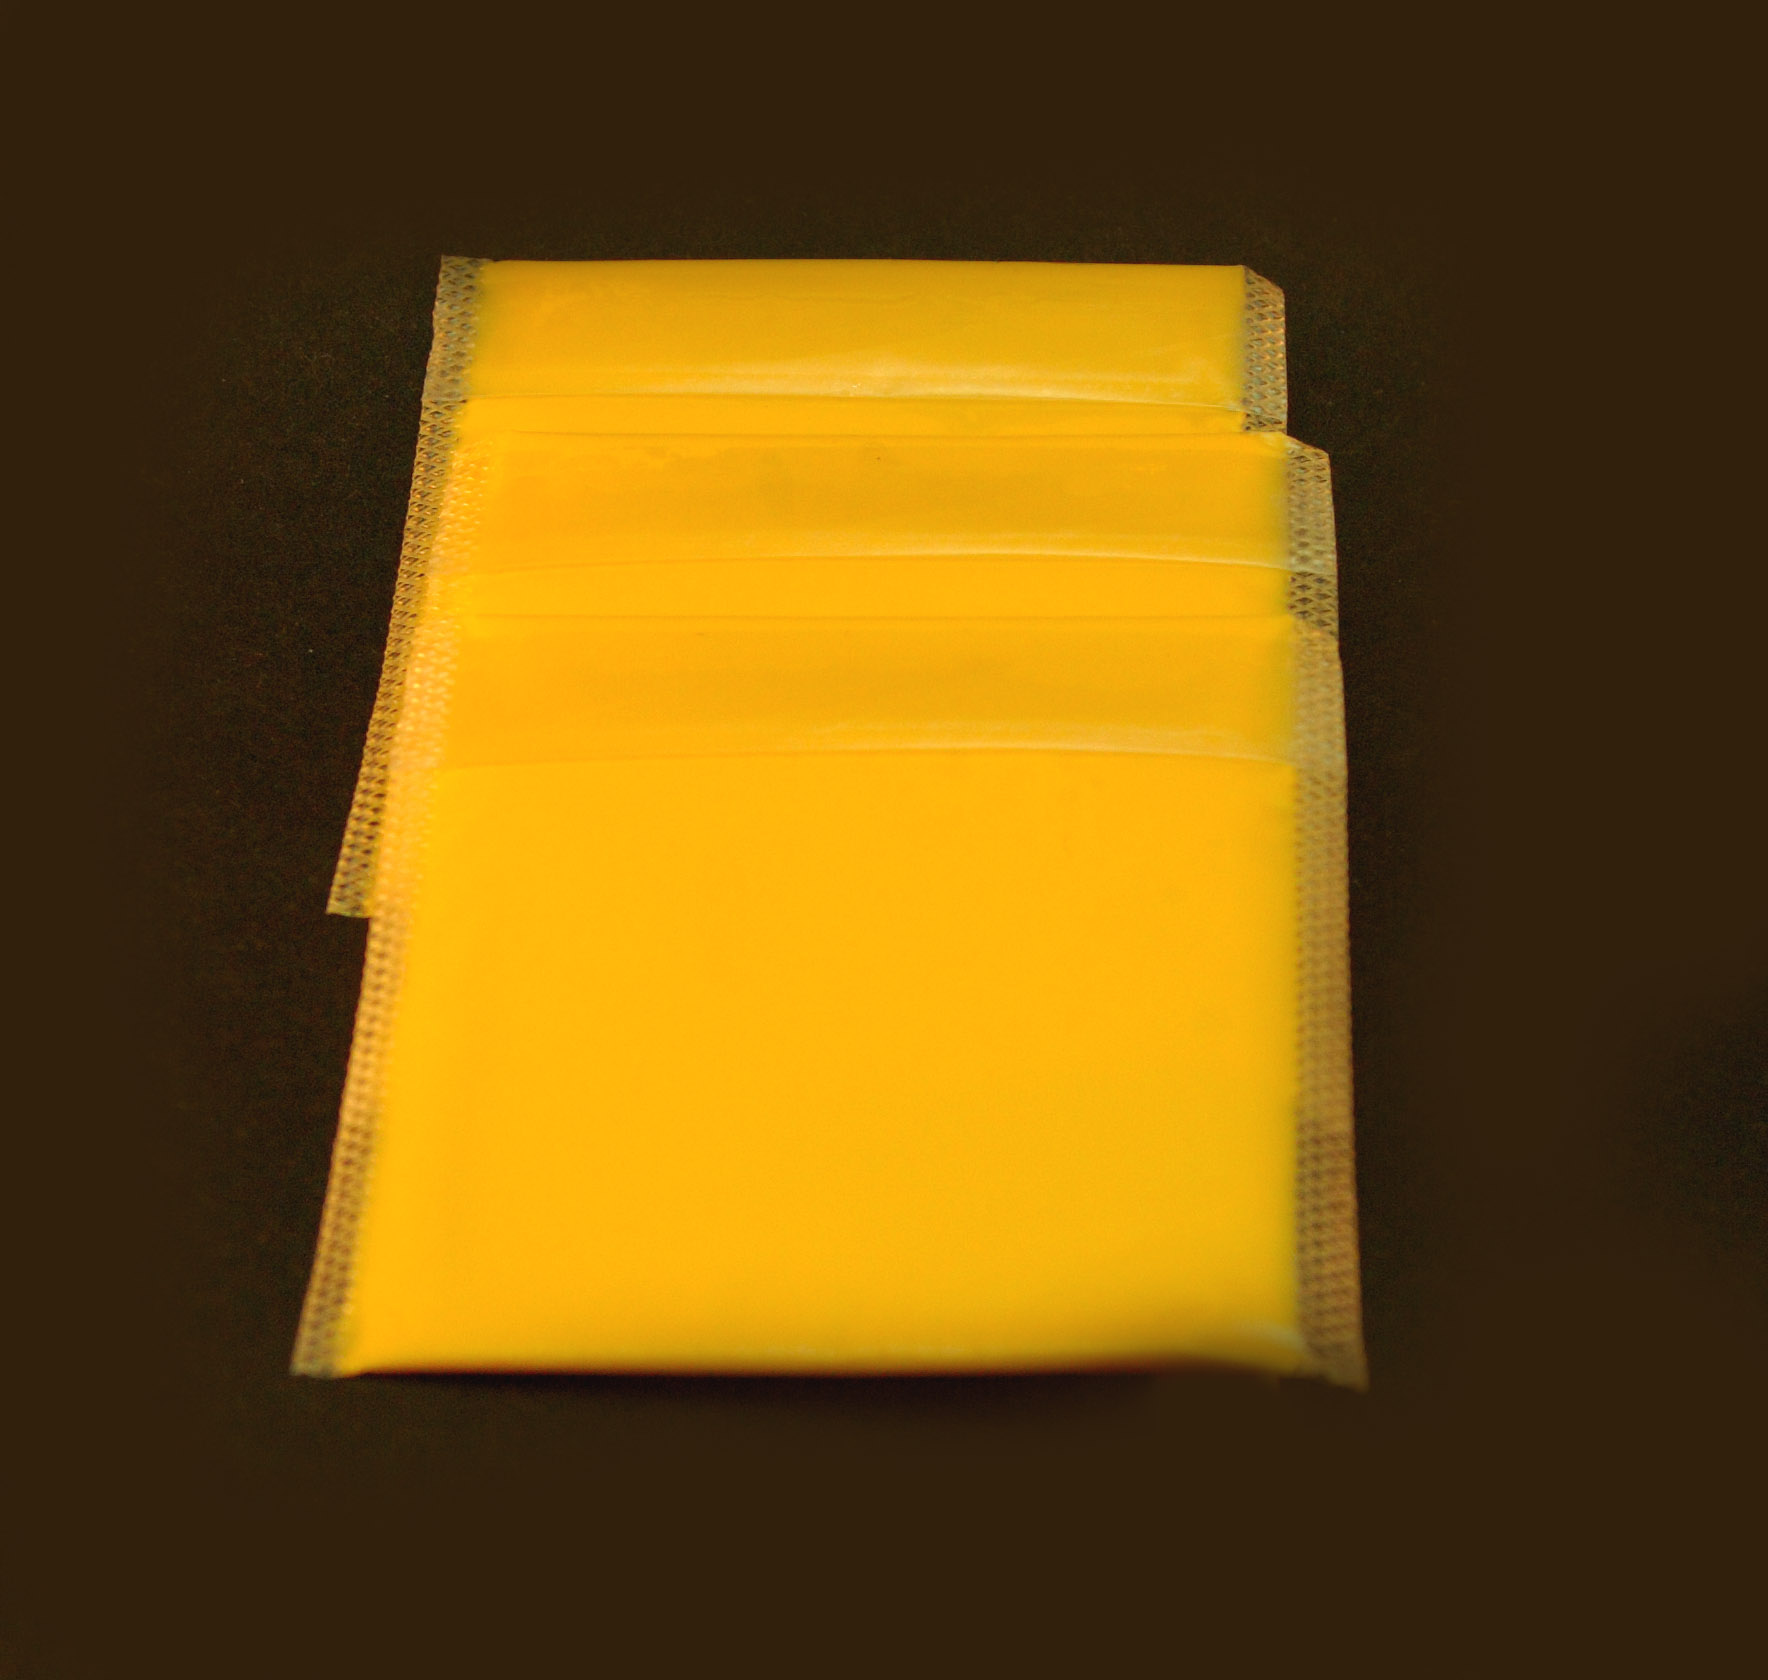 [Image: Wrapped_American_cheese_slices.jpg]